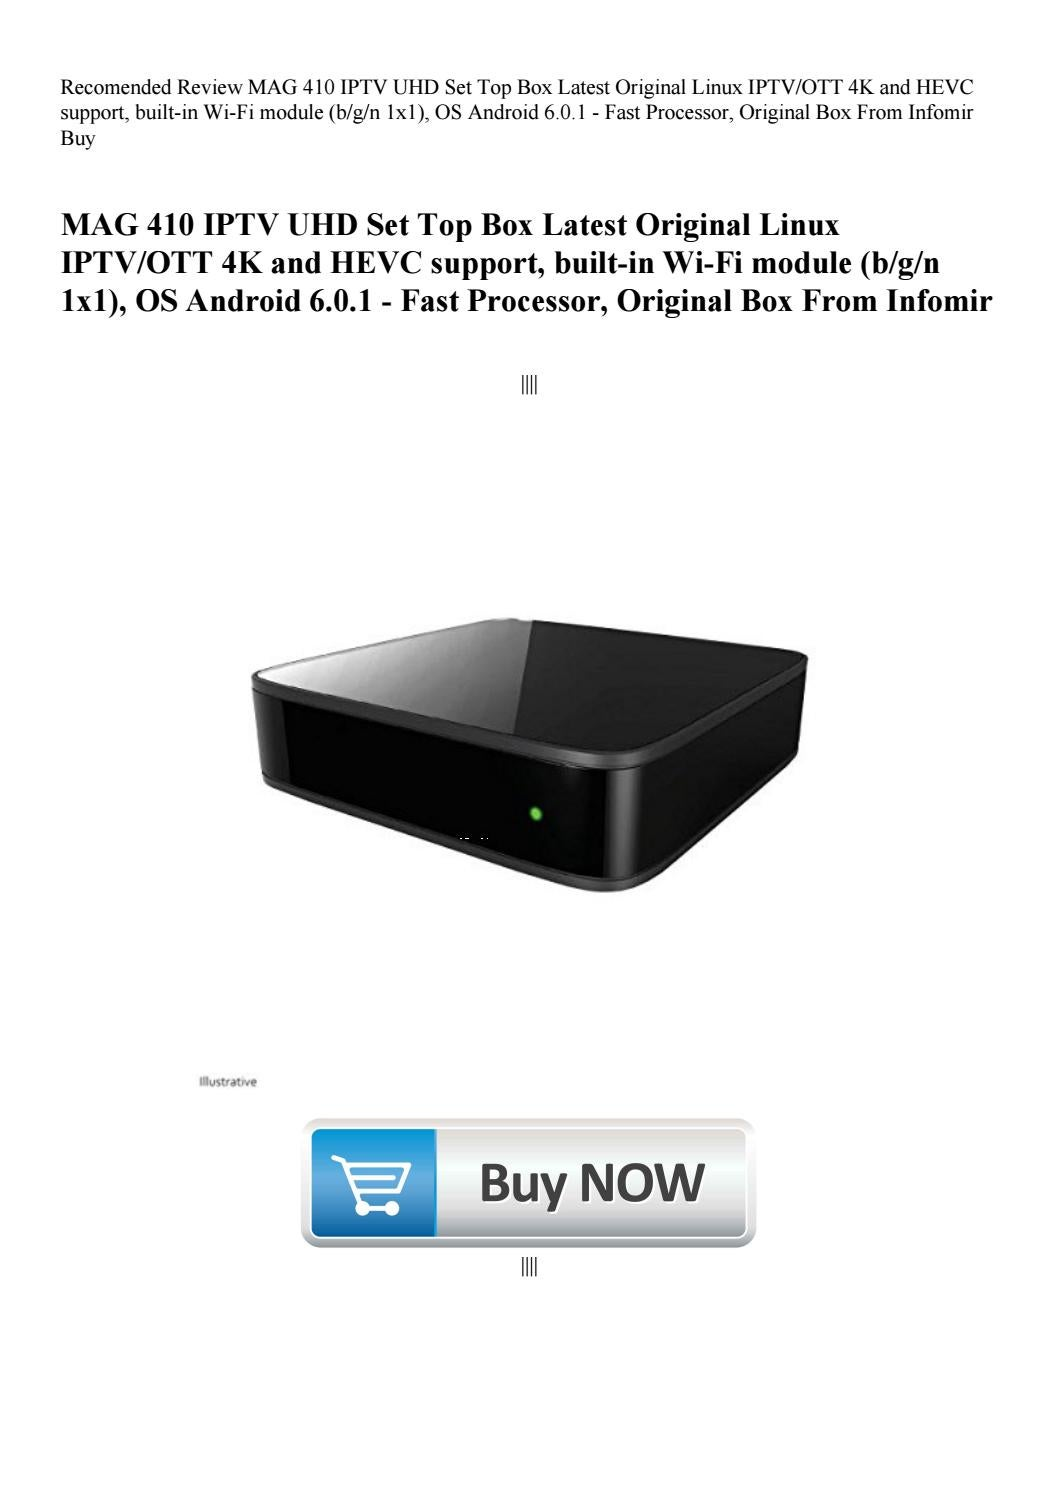 Recomended Review Mag 410 Iptv Uhd Set Top Box Latest Original Linux Iptvott 4k And Hevc Support Bu By Tanyabenton54 Issuu